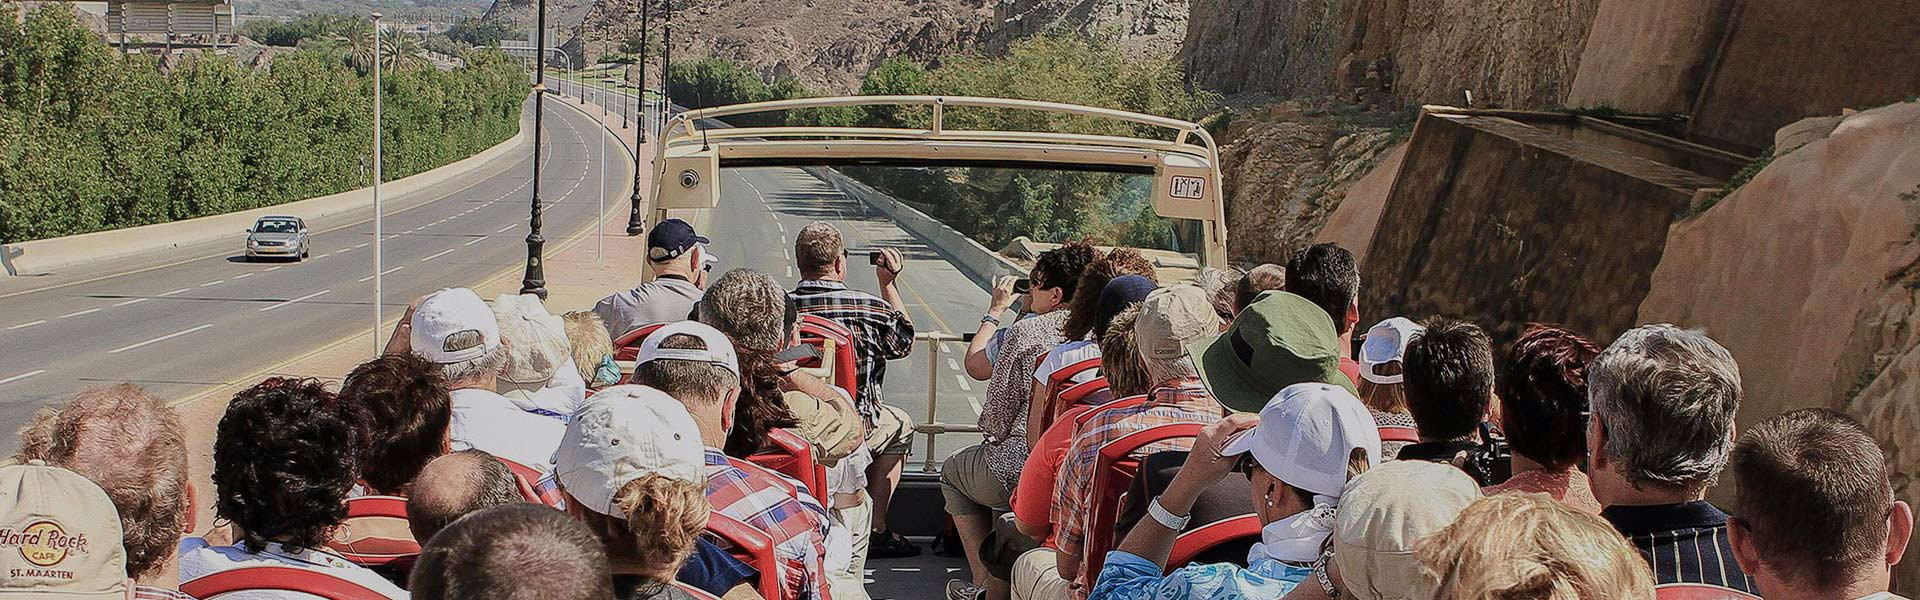 People on sightseeing bus tour in Muscat